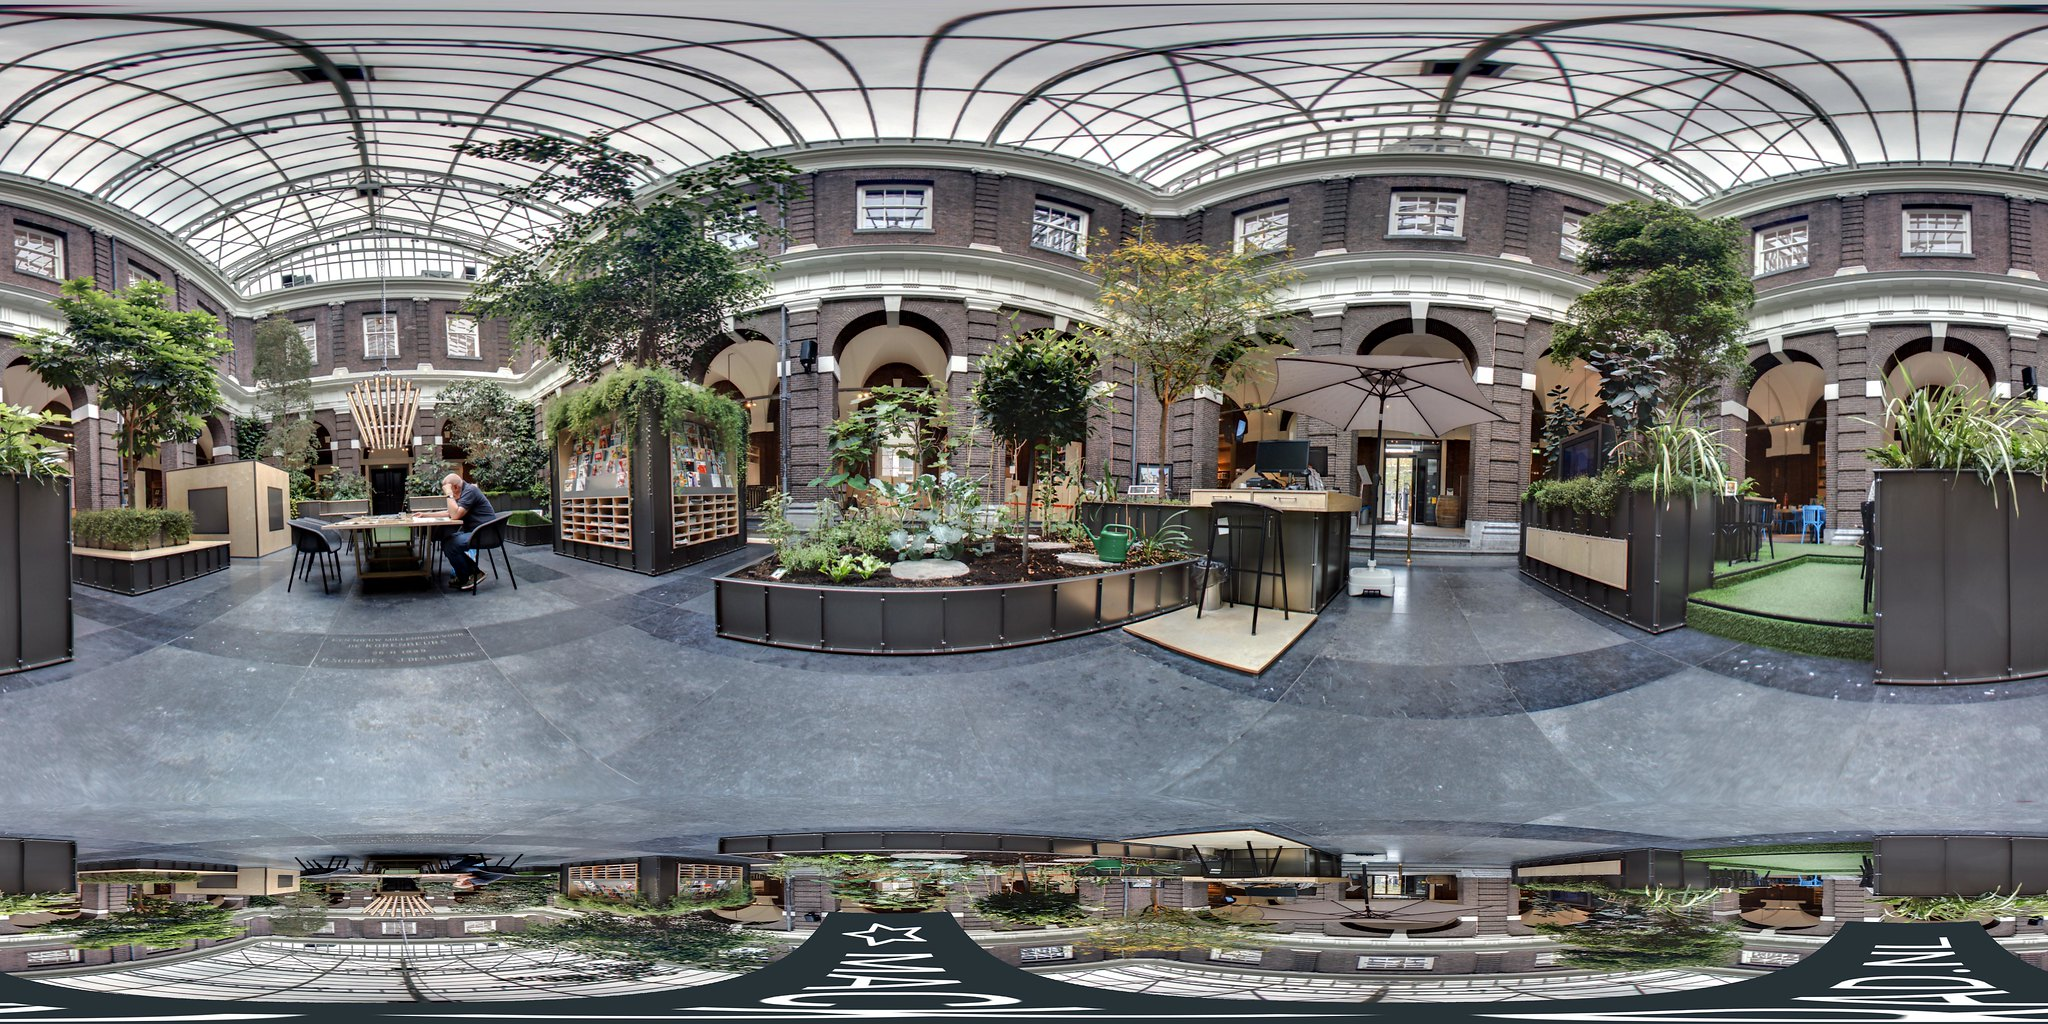 Testing 360 vr on Flickr